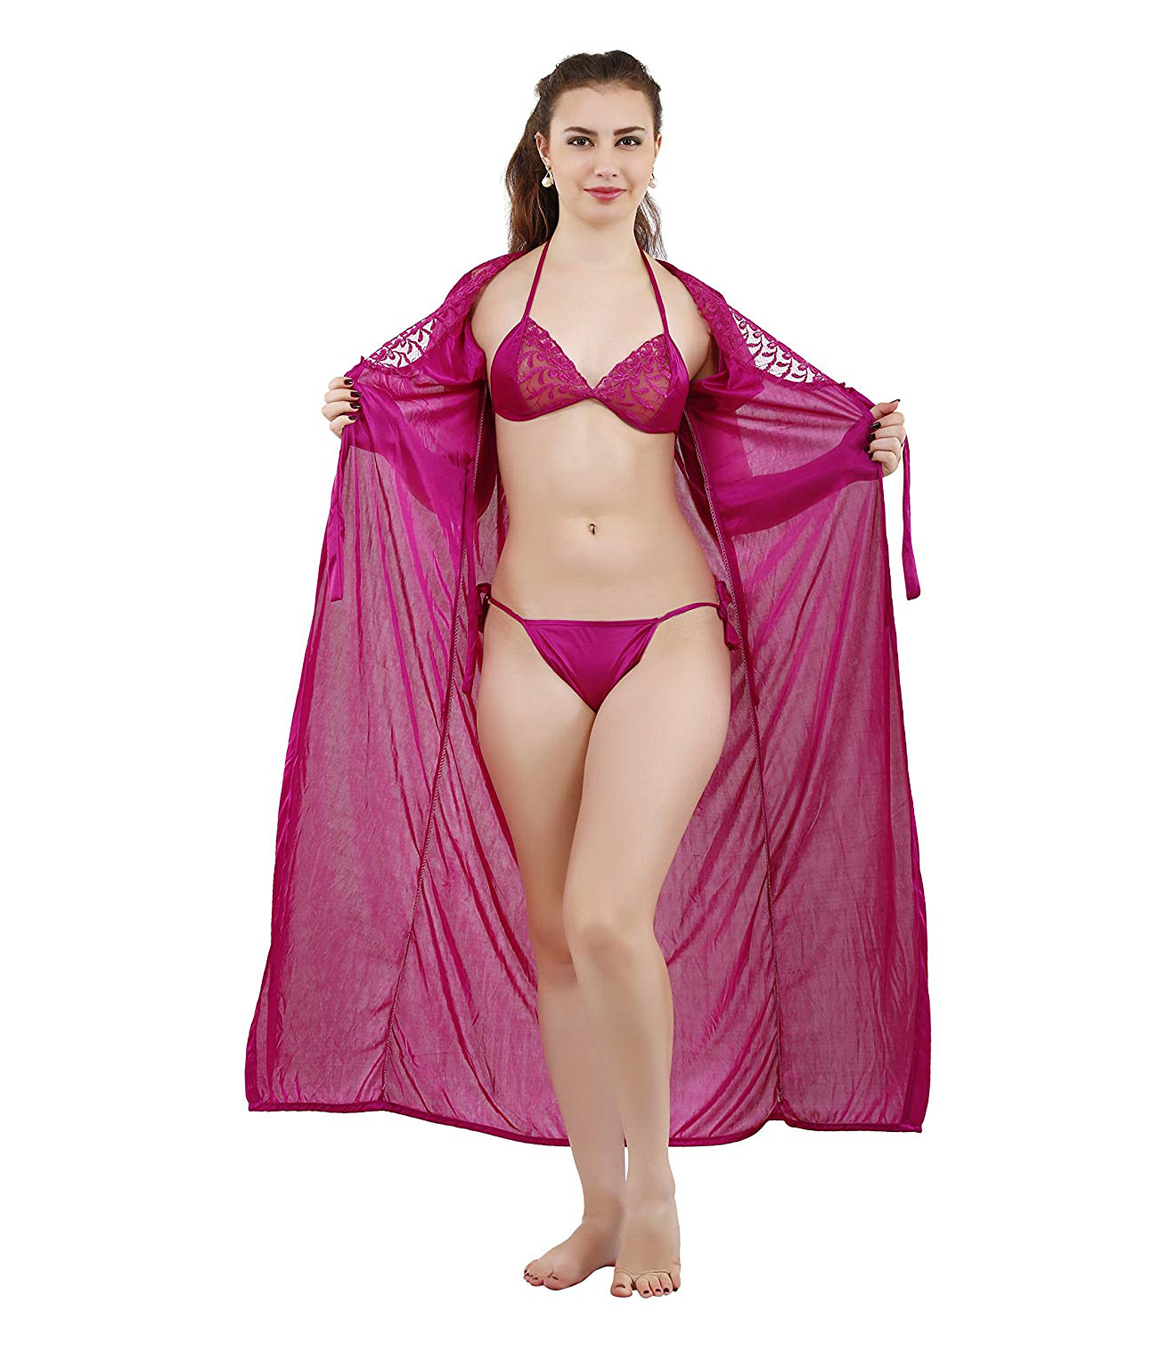 Romaisa Women`s Satin Nighty, Wrap Gown, Top, Pajama, Bra and Thong (Size - Small, Medium, Large) (Pack of 6) COLOUR : MAGENTA